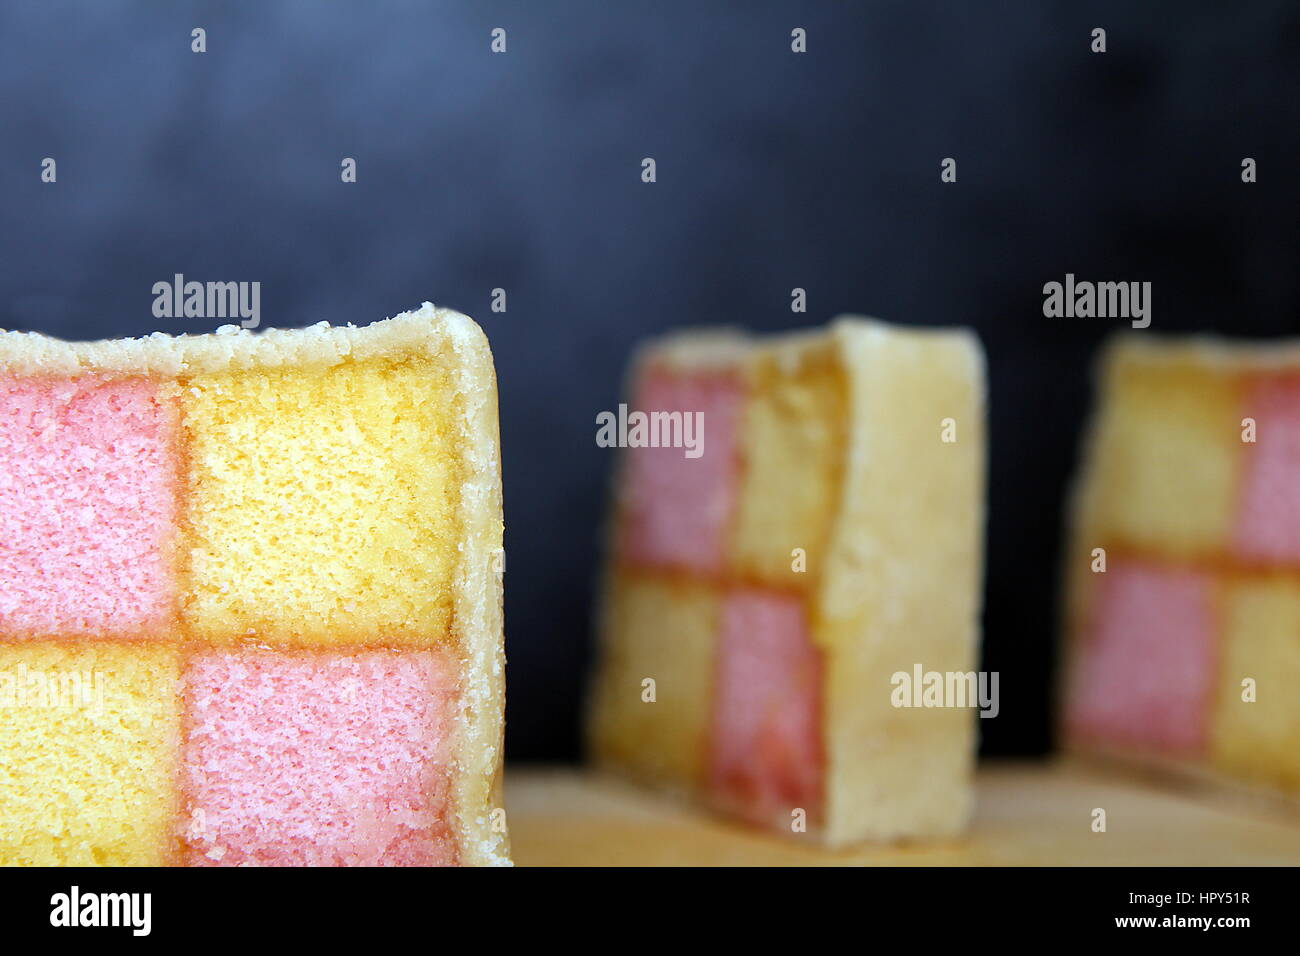 Freshly cut Battenberg Cake slices on wooden board with dark background. Pink and yellow sponge covered in marzipan - Stock Image